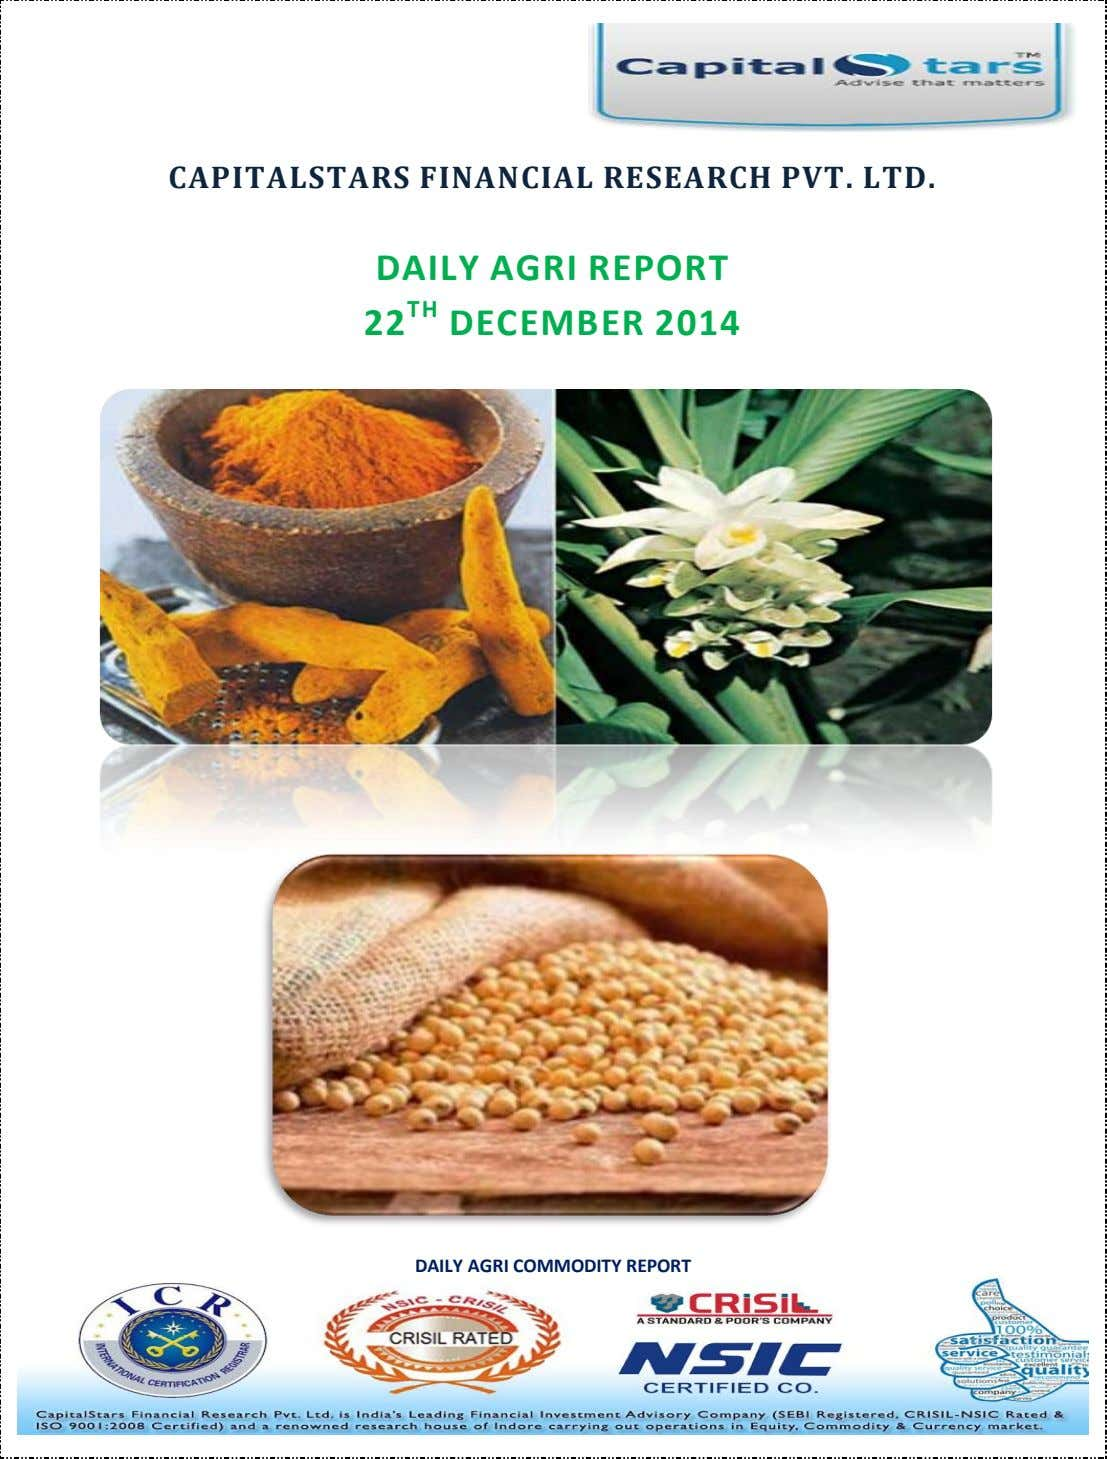 CAPITALSTARS FINANCIAL RESEARCH PVT. LTD. DAILY AGRI REPORT 22 TH DECEMBER 2014 DAILY AGRI COMMODITY